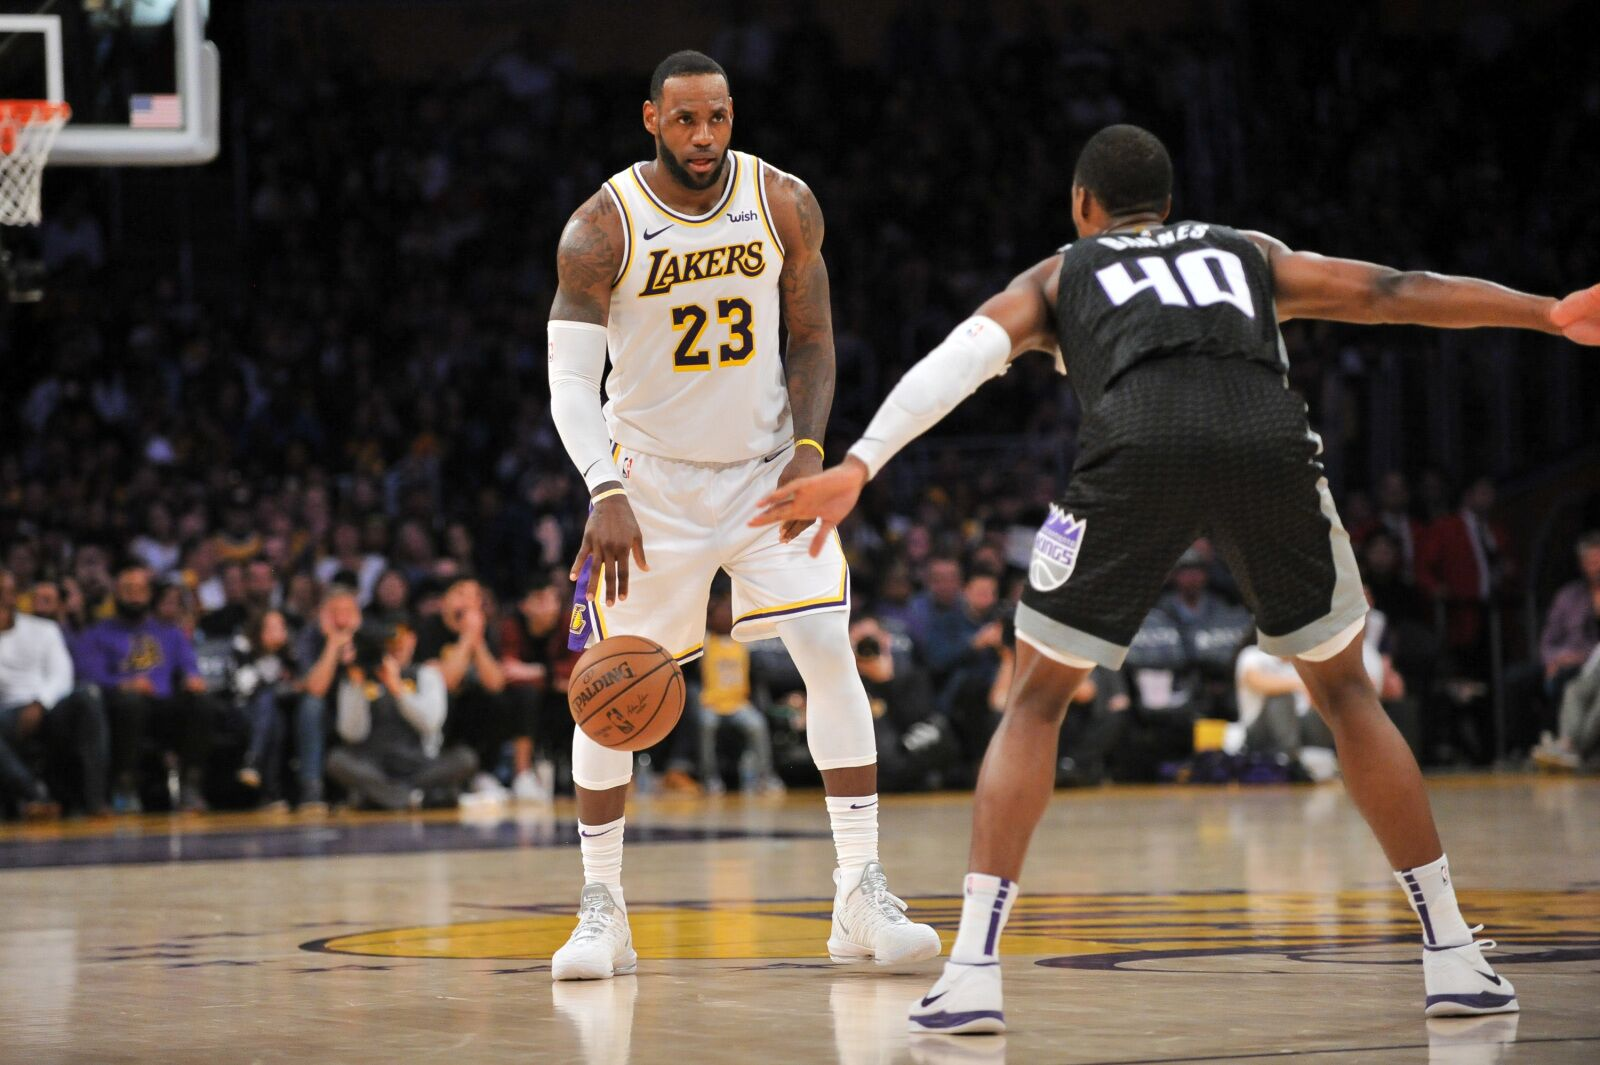 Defense Will Be Key In Game Against Lakers